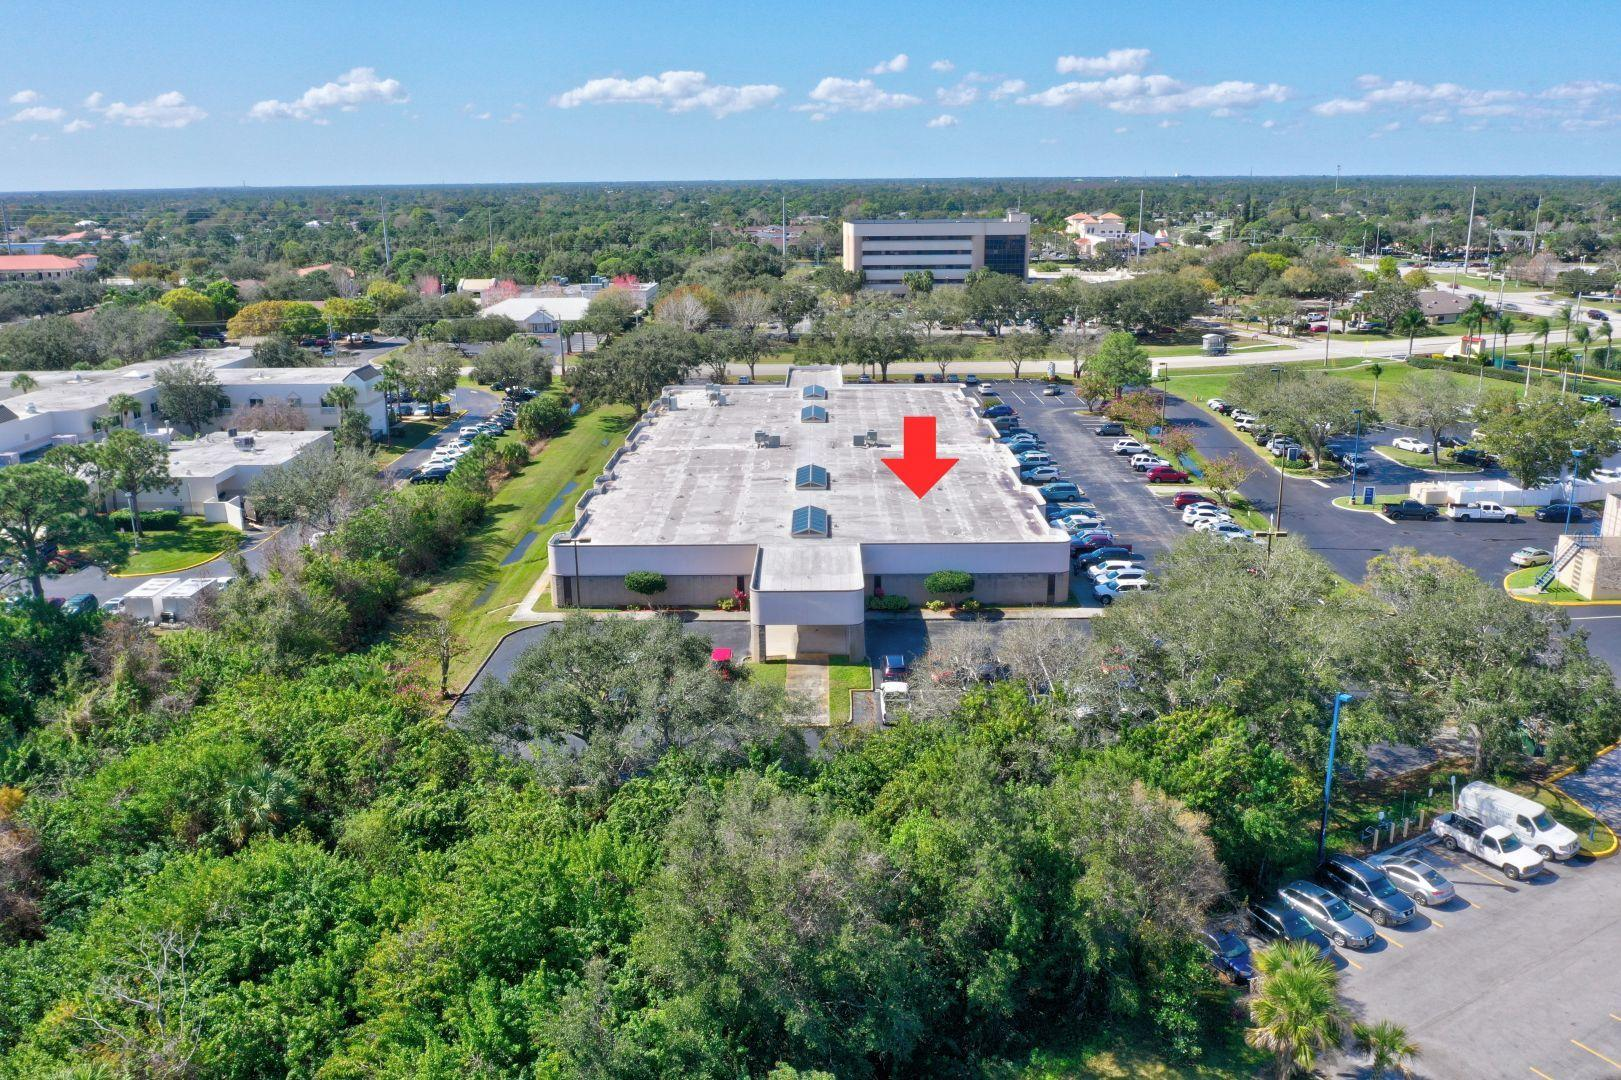 GREAT OPPORTUNITY TO OWN THIS TURNKEY MEDICAL OFFICE CONDOMINIUM RIGHT NEXT TO ST LUCIE MEDICAL CENTER AND THE CIVIC CENTER.. IN THE HEART OF THE CITY OF PORT ST LUCIE REDEVELOPMENT AREA. LARGE END UNIT WITH LOTS OF PARKING. OVER 2680 SF, UPDATED WITH CARPET, GRANITE COUNTERS, LARGE BILLING/FILE AREA. COMFORTABLE LIGHT & BRIGHT LOBBY, 8 EXAM OR LAB ROOMS, MOST WITH SINK WATER SOURCE. 2 VERY LARGE OFFICE OR CONSULTING ROOMS. ONE EXAM ROOM WITH WALL OF LOCKING CABINETS, PERFECT LAB SET UP. MAIN LOBBY ENTRANCE AND 2 OTHER OUTSIDE PRIVATE ENTRANCES. 4 BATHROOMS & A FULL EAT-IN KITCHEN.